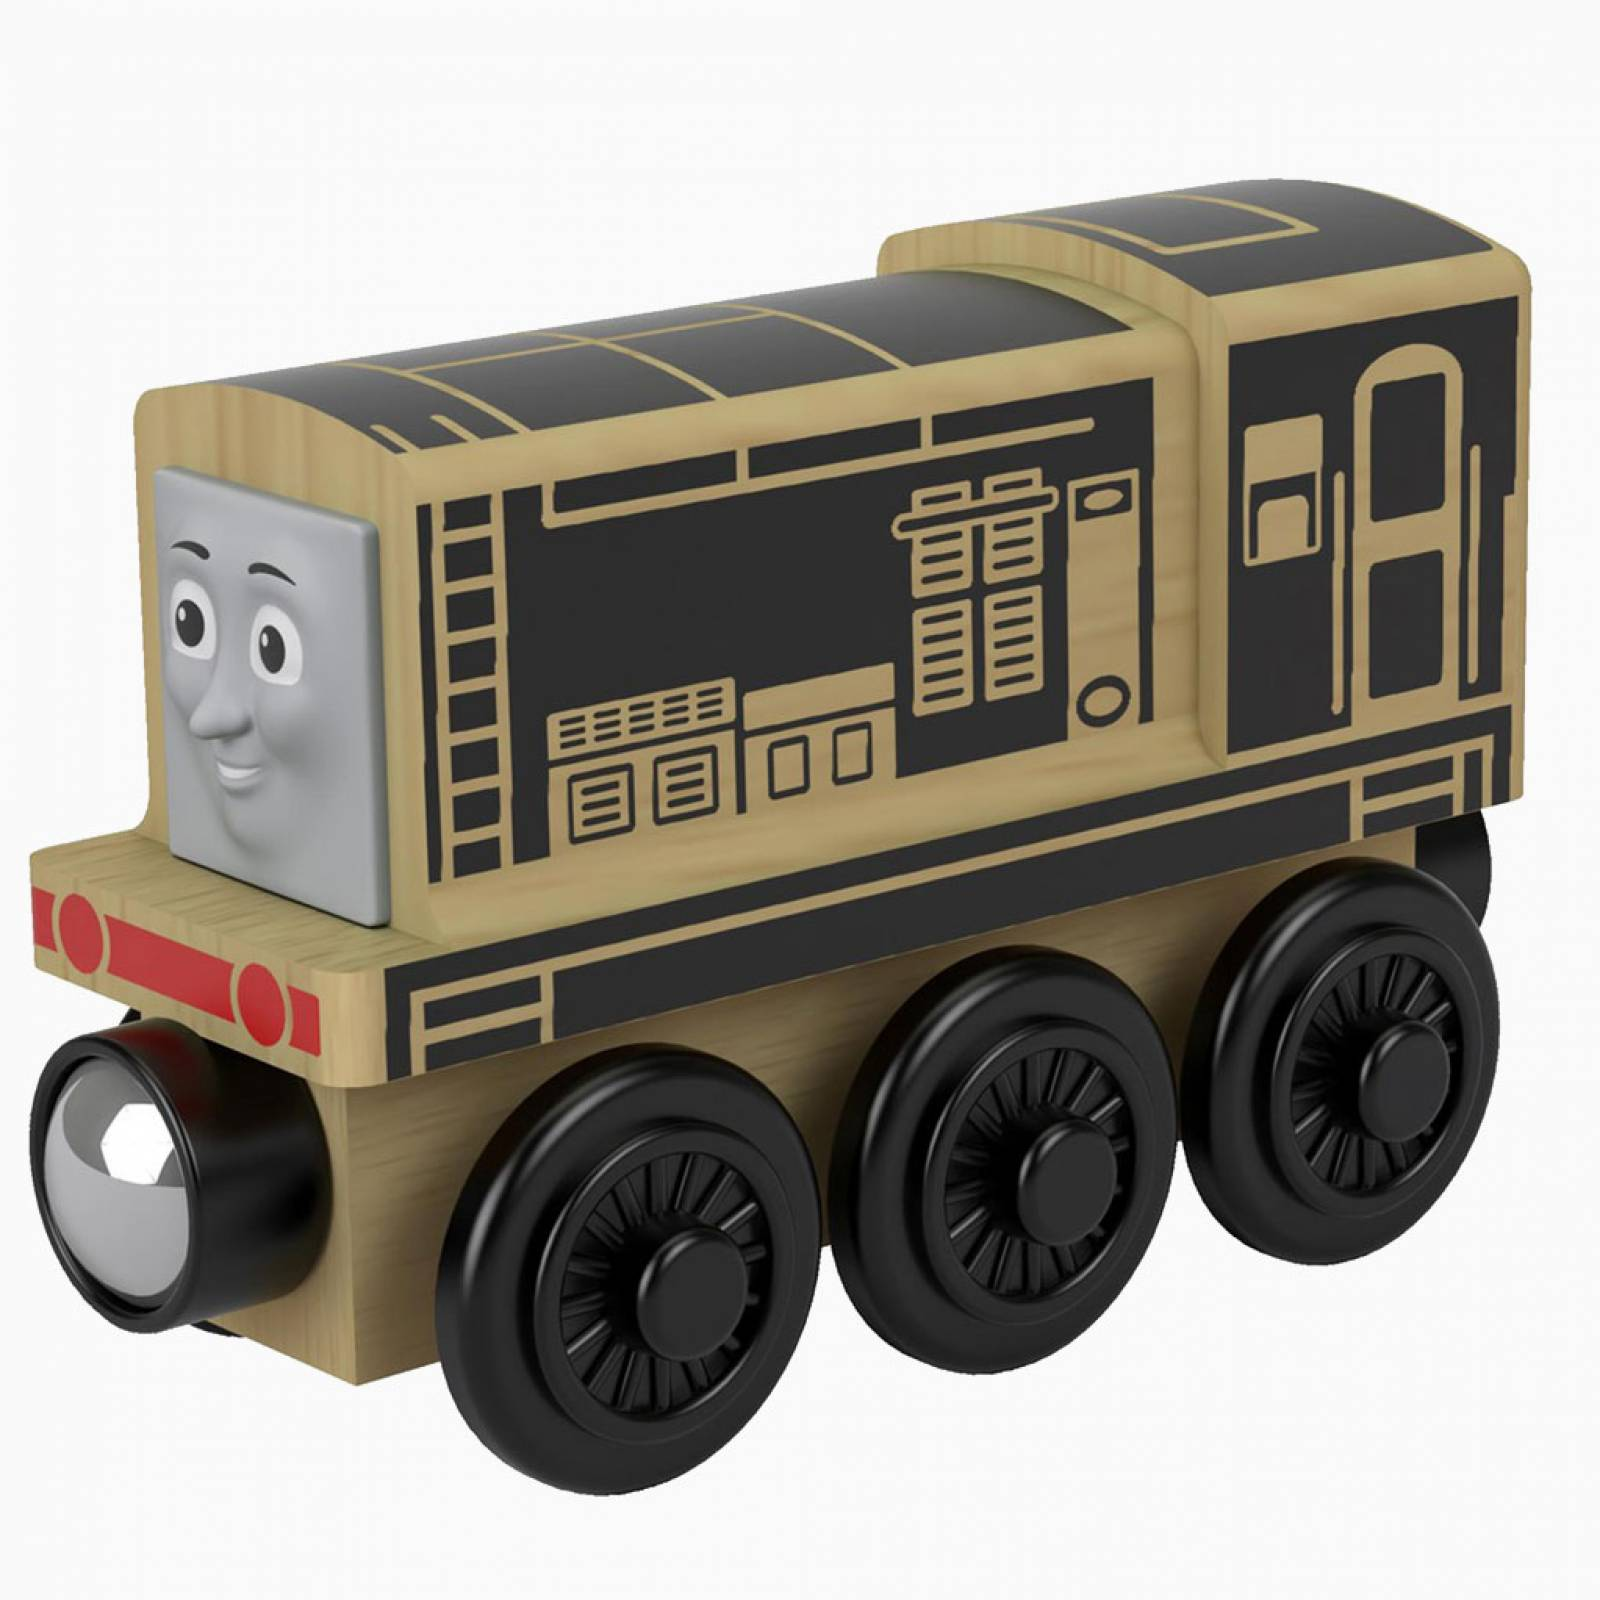 Diesel - Thomas The Tank Engine Wooden Railway Train thumbnails